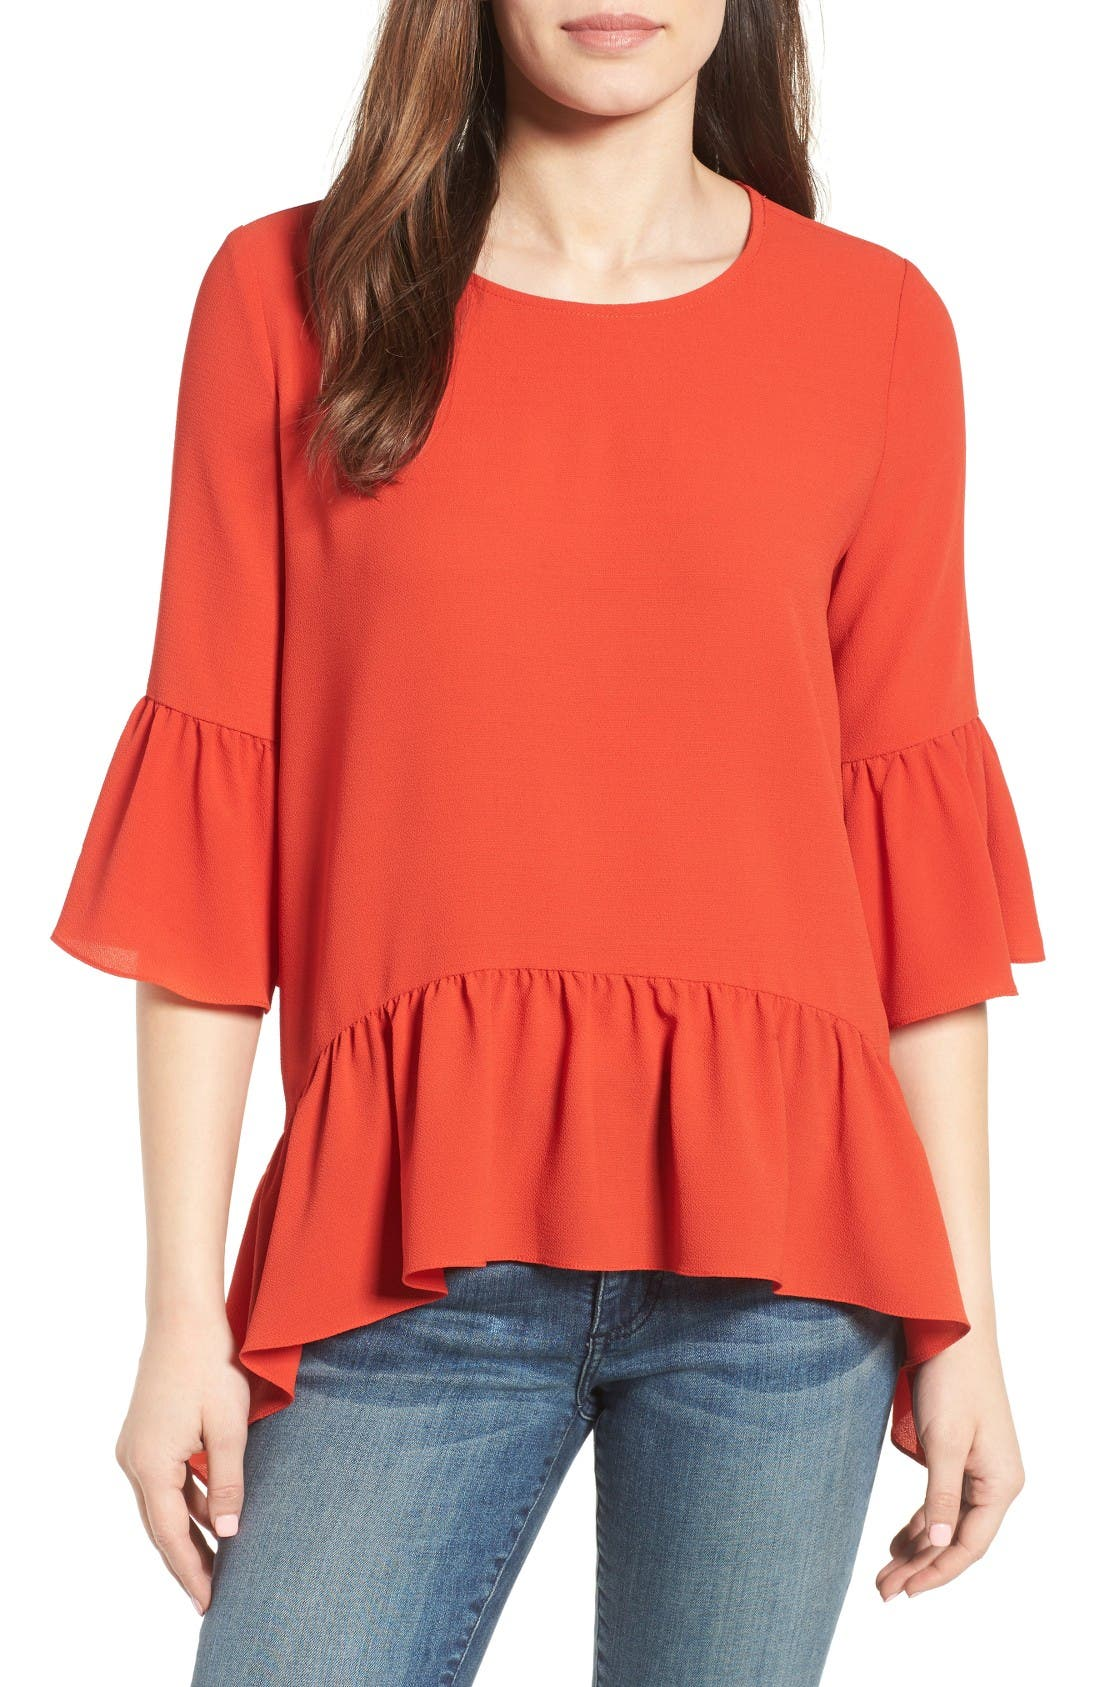 Alternate Image 1 Selected - Gibson Ruffled Handkerchief Hem Top (Regular & Petite)